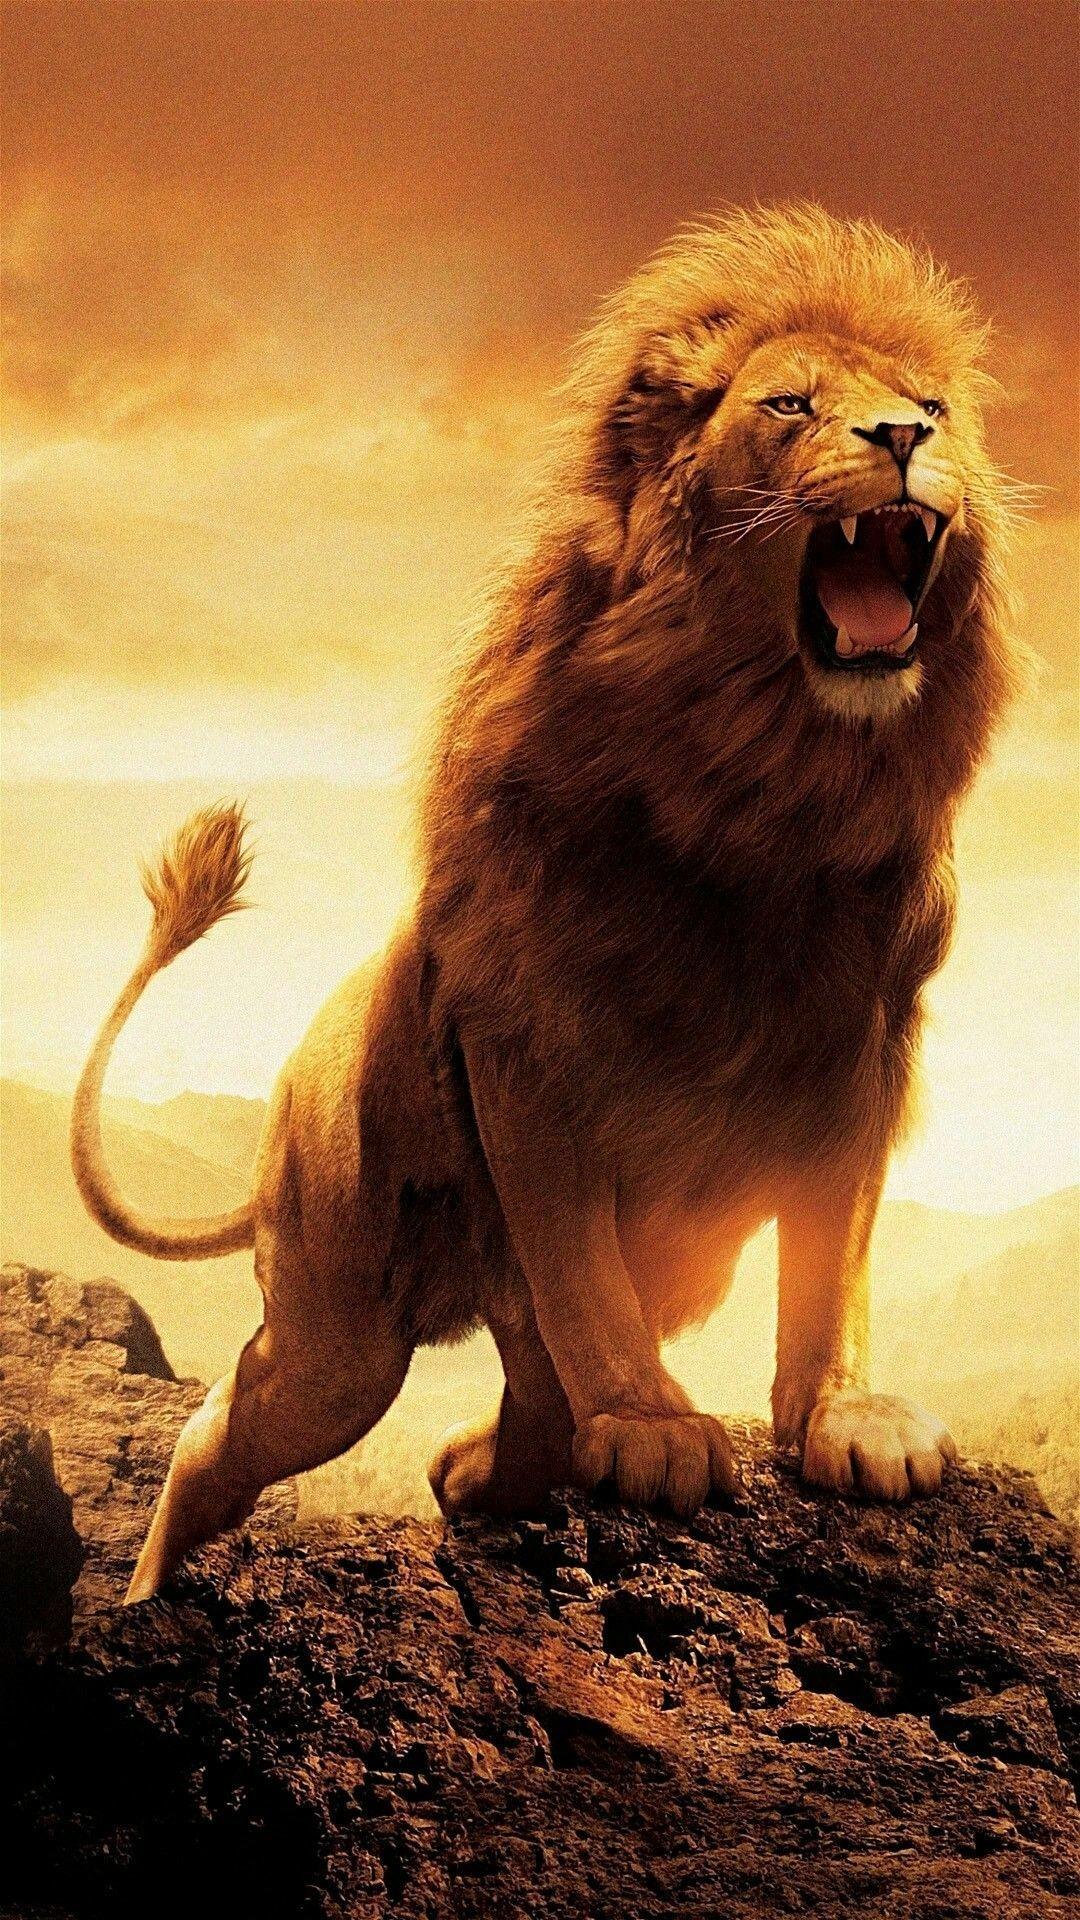 Res: 1080x1920, African Animals, Lion Tattoo, Black Lion, Animal Pictures, Wallpaper Free  Download, Animal Tattoos, Beautiful Cats, Cat Art, Iphone Wallpapers